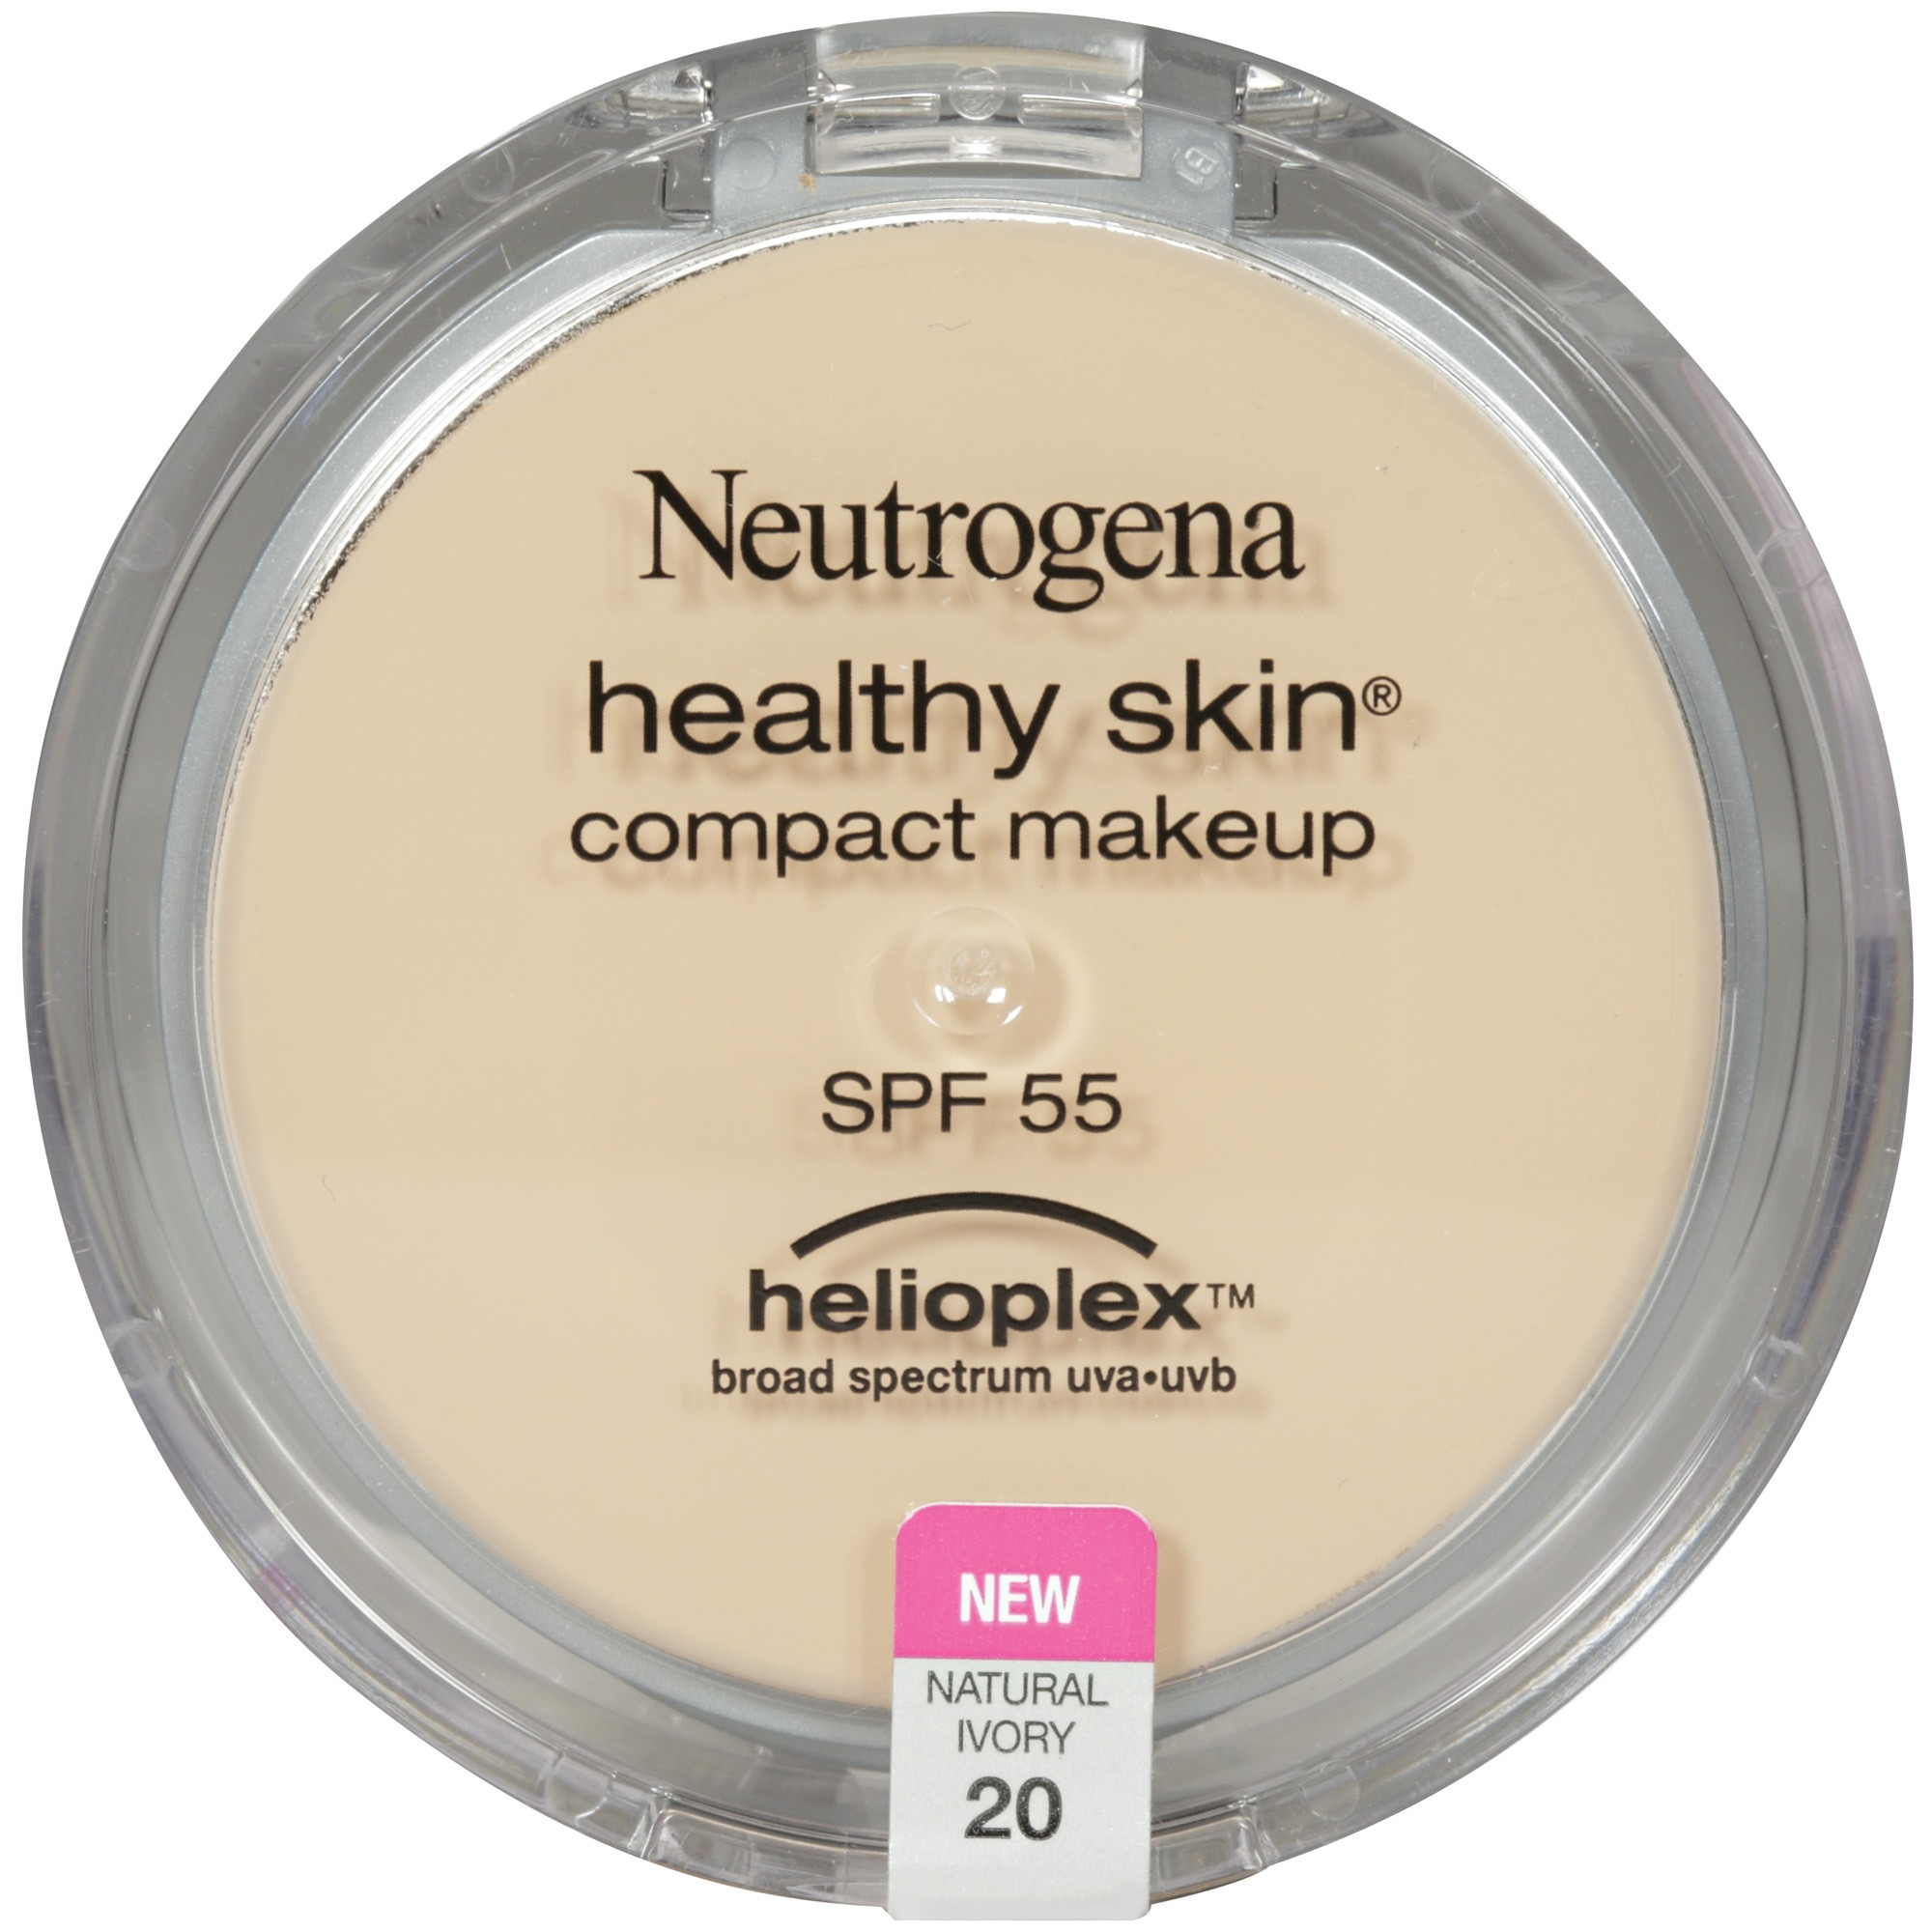 Neutrogena Healthy Skin Compact Makeup Broad Spectrum SPF 55, Natural Ivory 20, .35 Oz